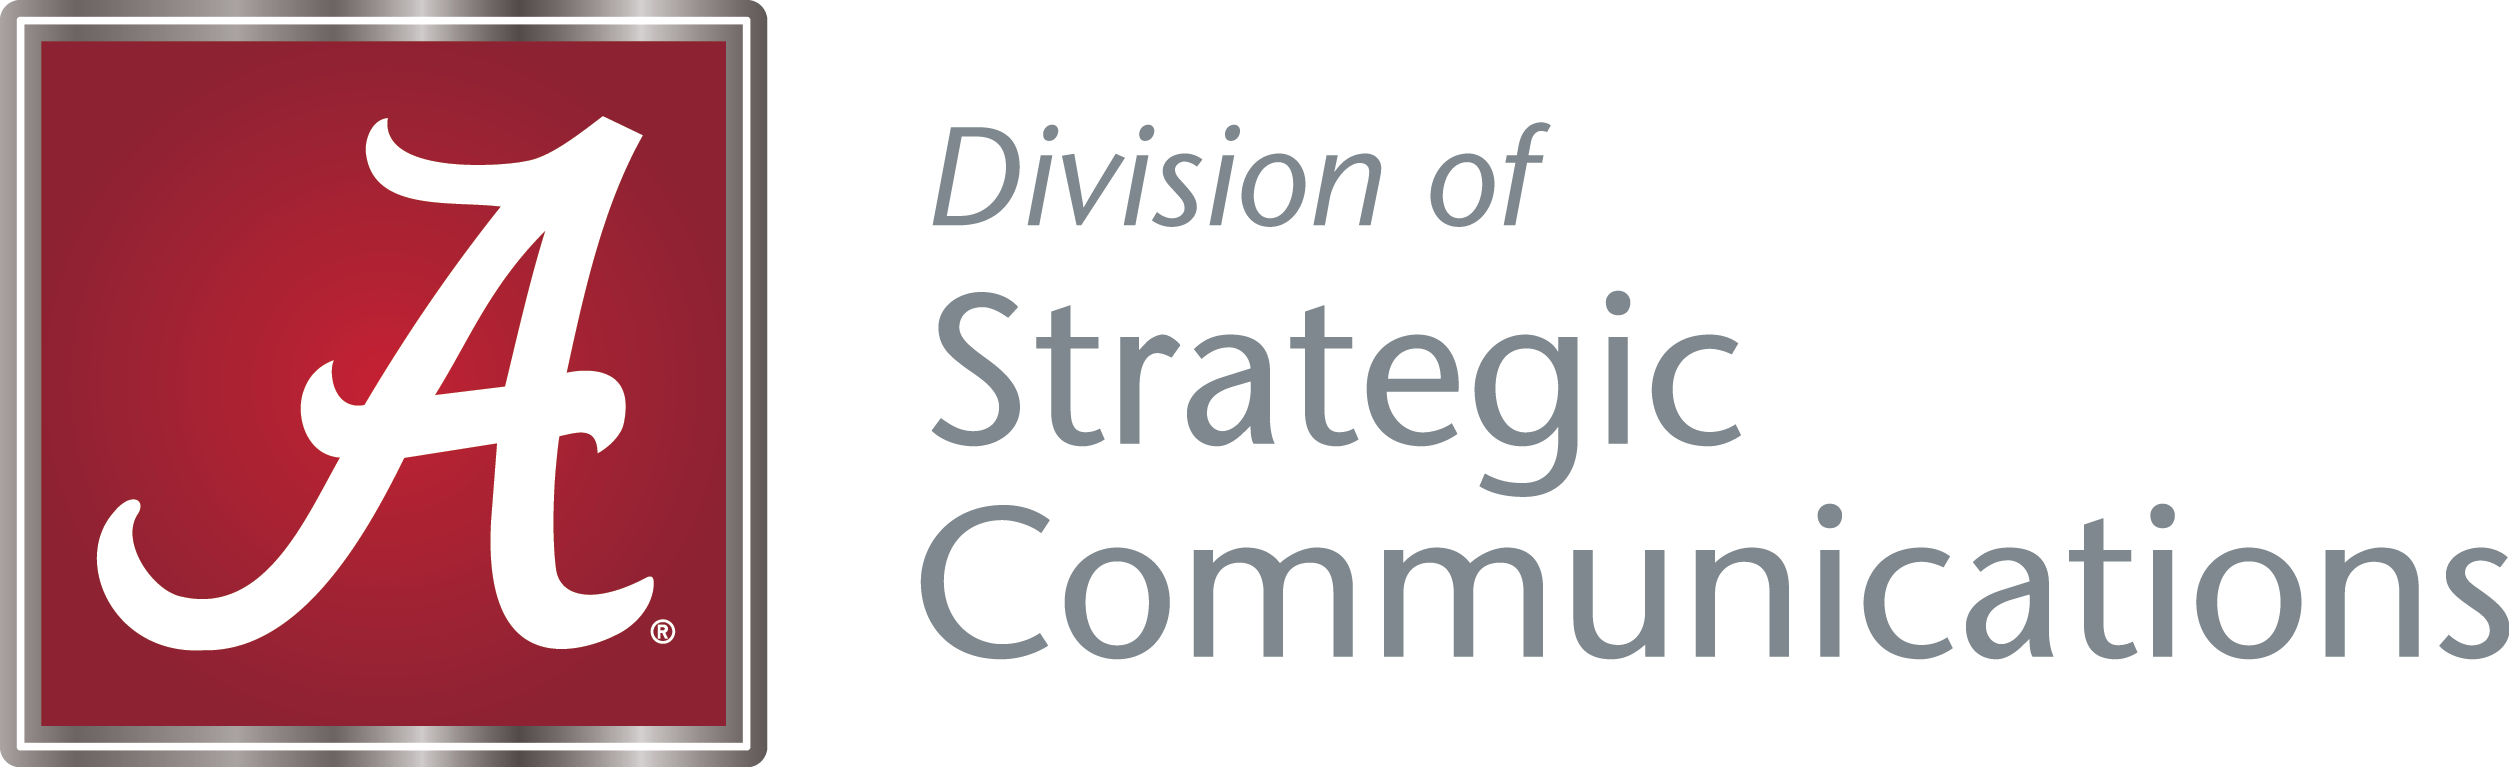 Capstone A Division of Strategic Communications Identifier.